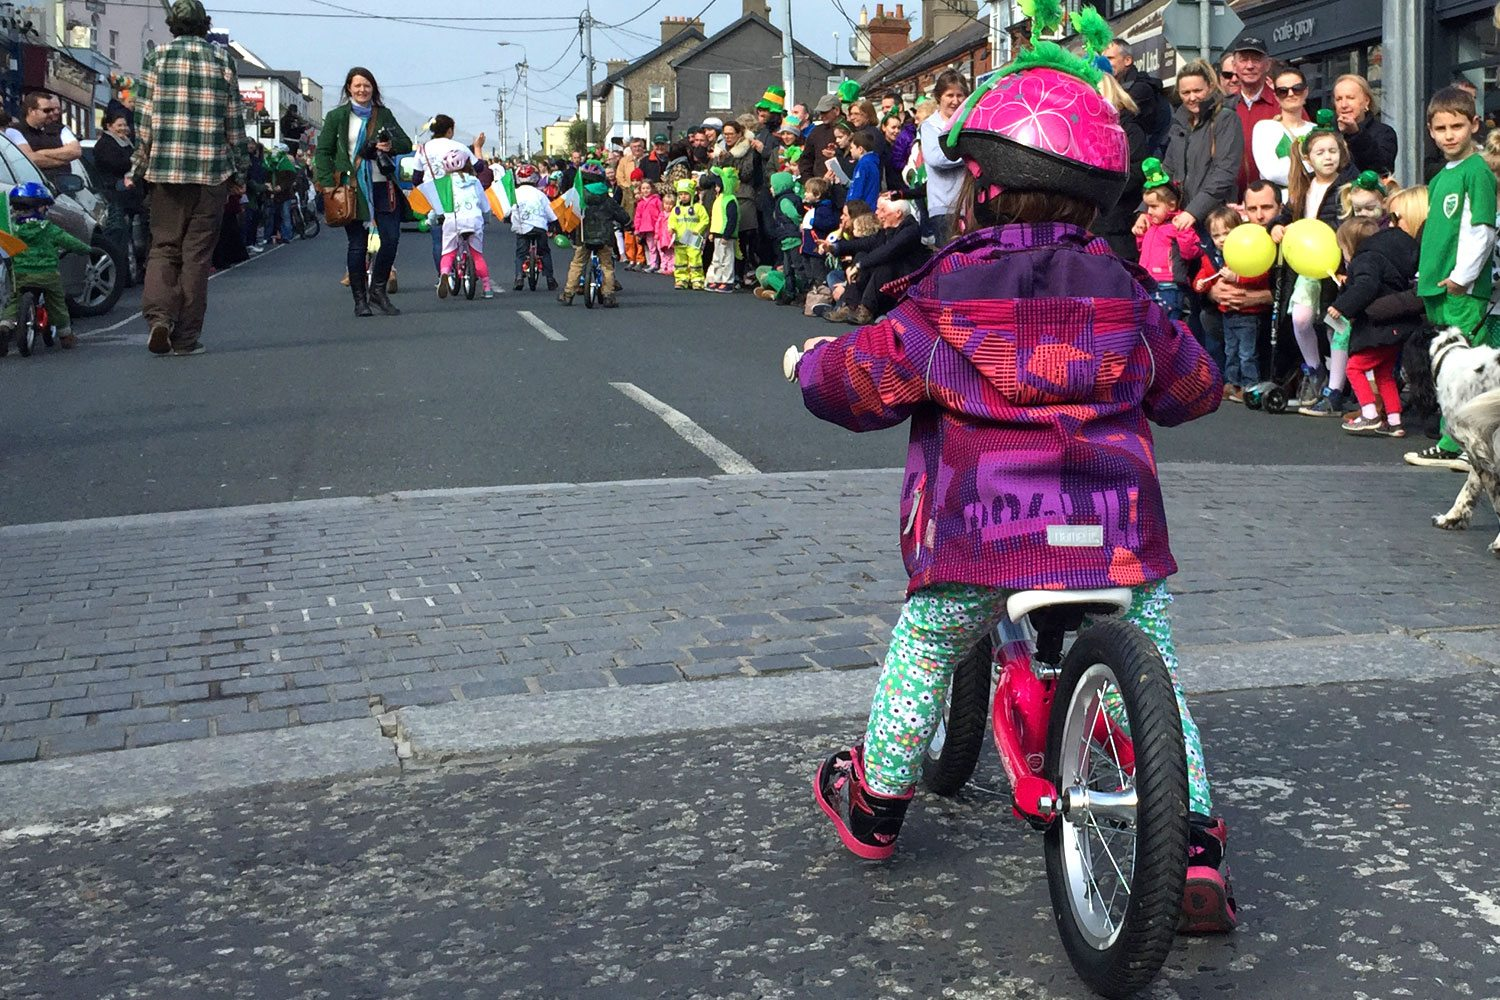 Two year old on a balance bike